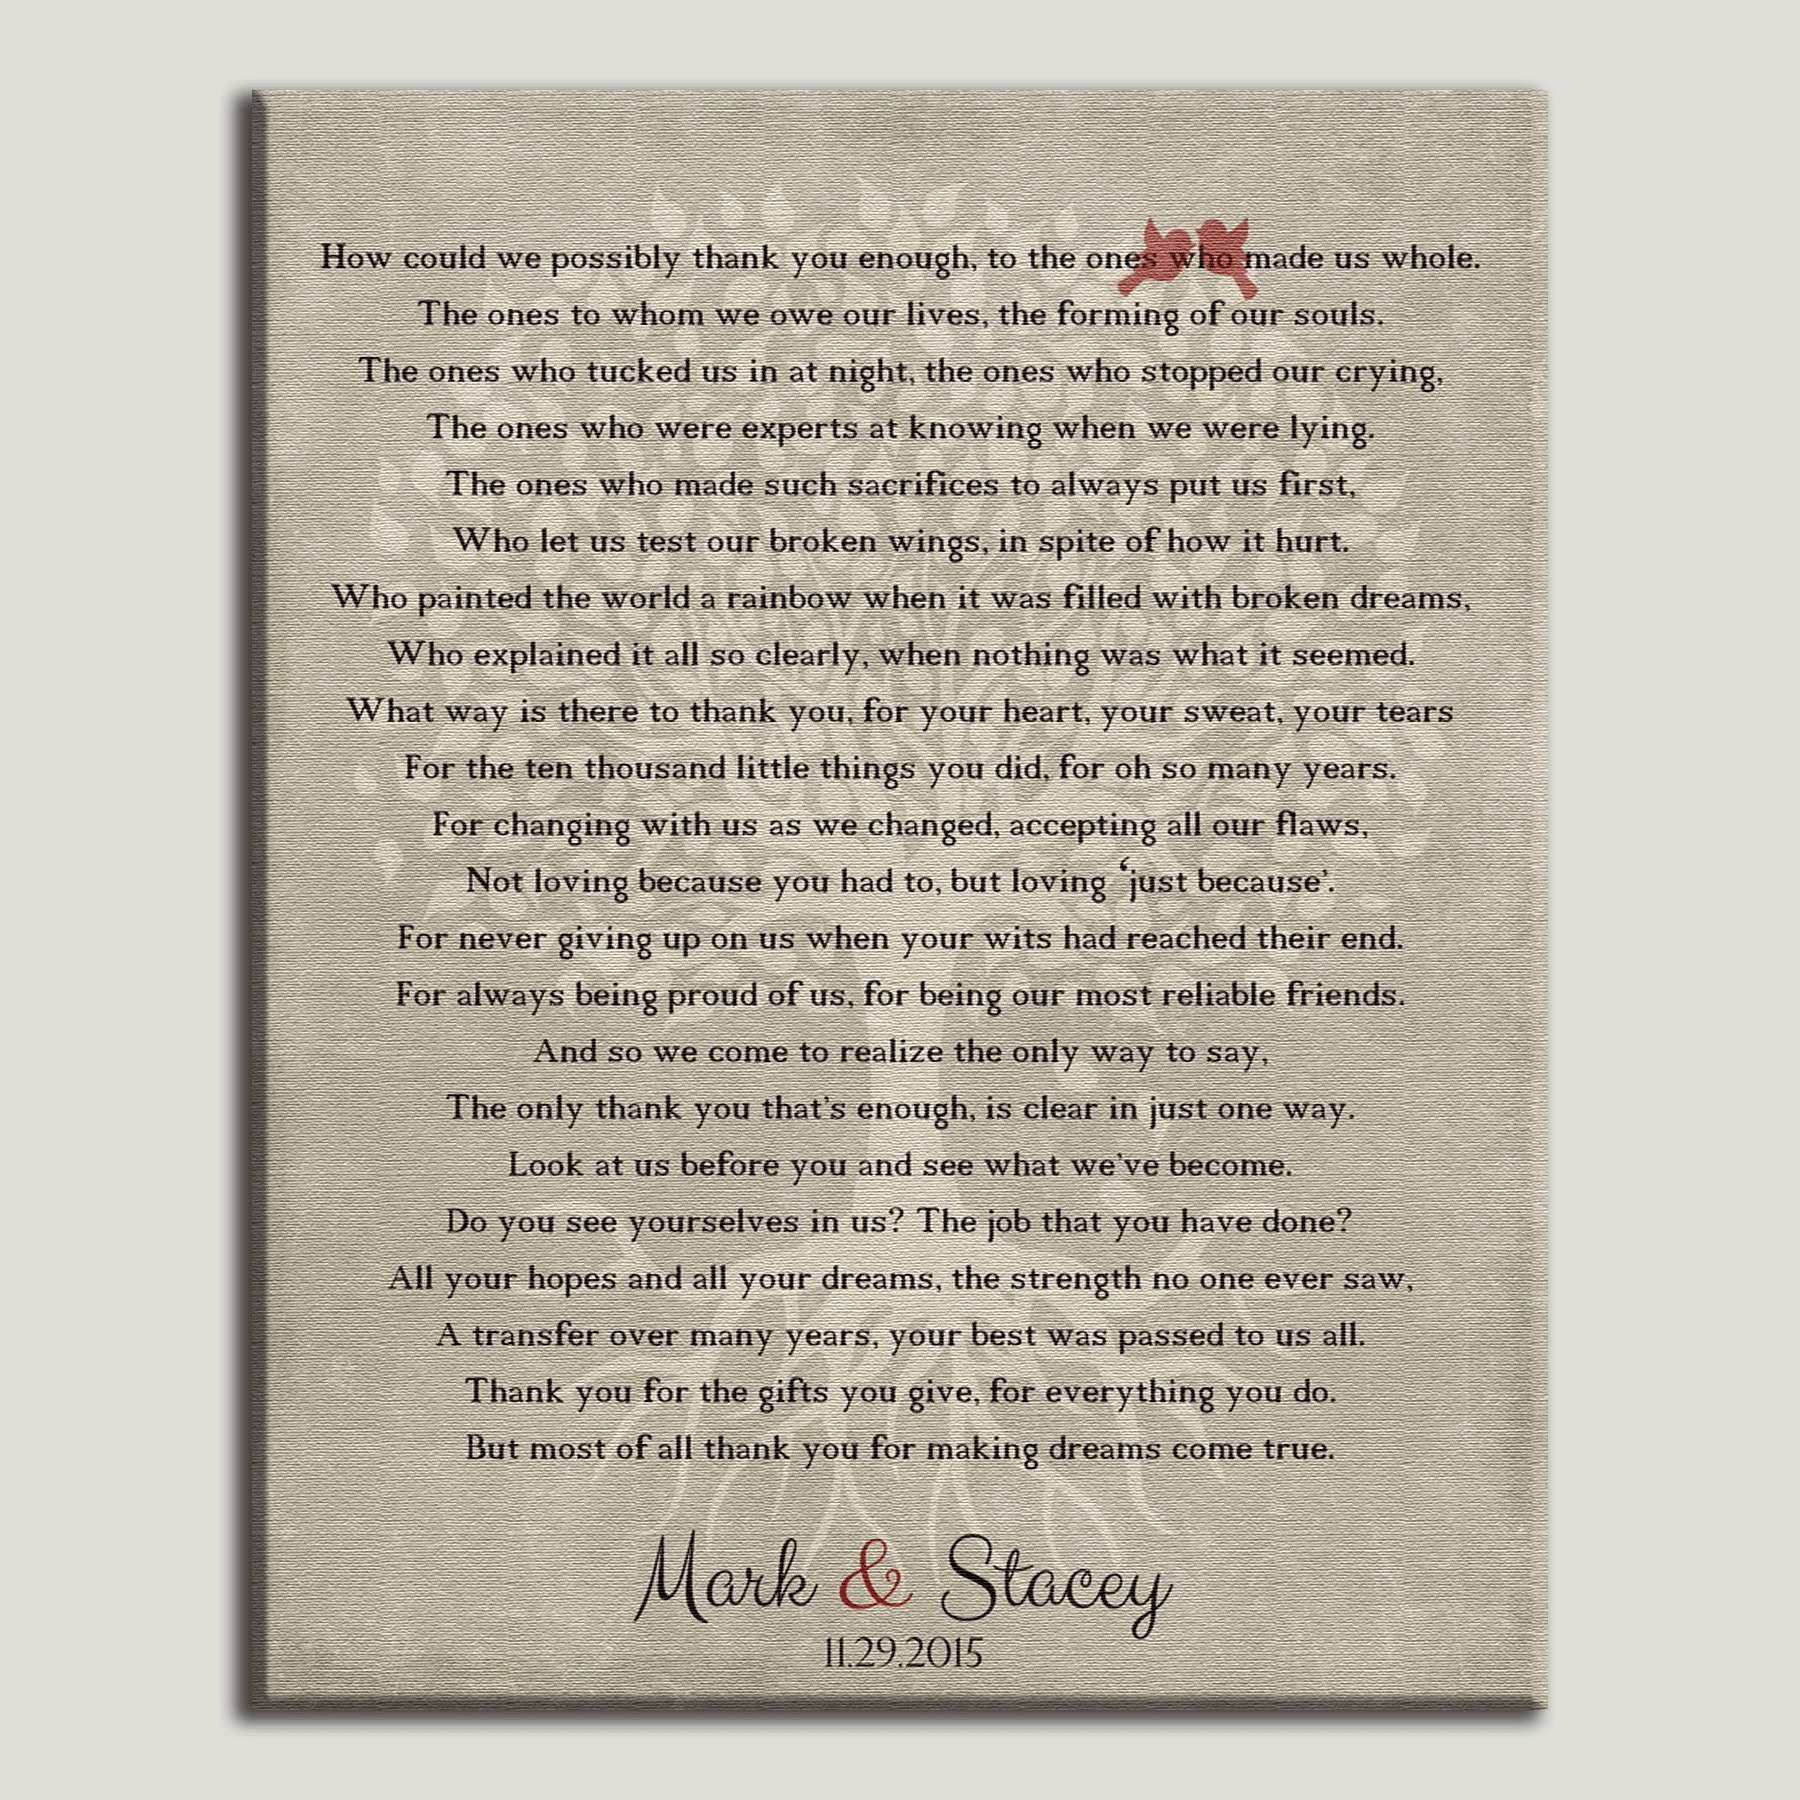 16x20 Mounted Canvas Personalized Gift For Parents How Could We Possibly Thank You Enough Tree Roots Love Birds Gift For Mother of Groom Bride Family Wedding Poem Mom and Dad Custom Art Print by Lucky Tusk Co.